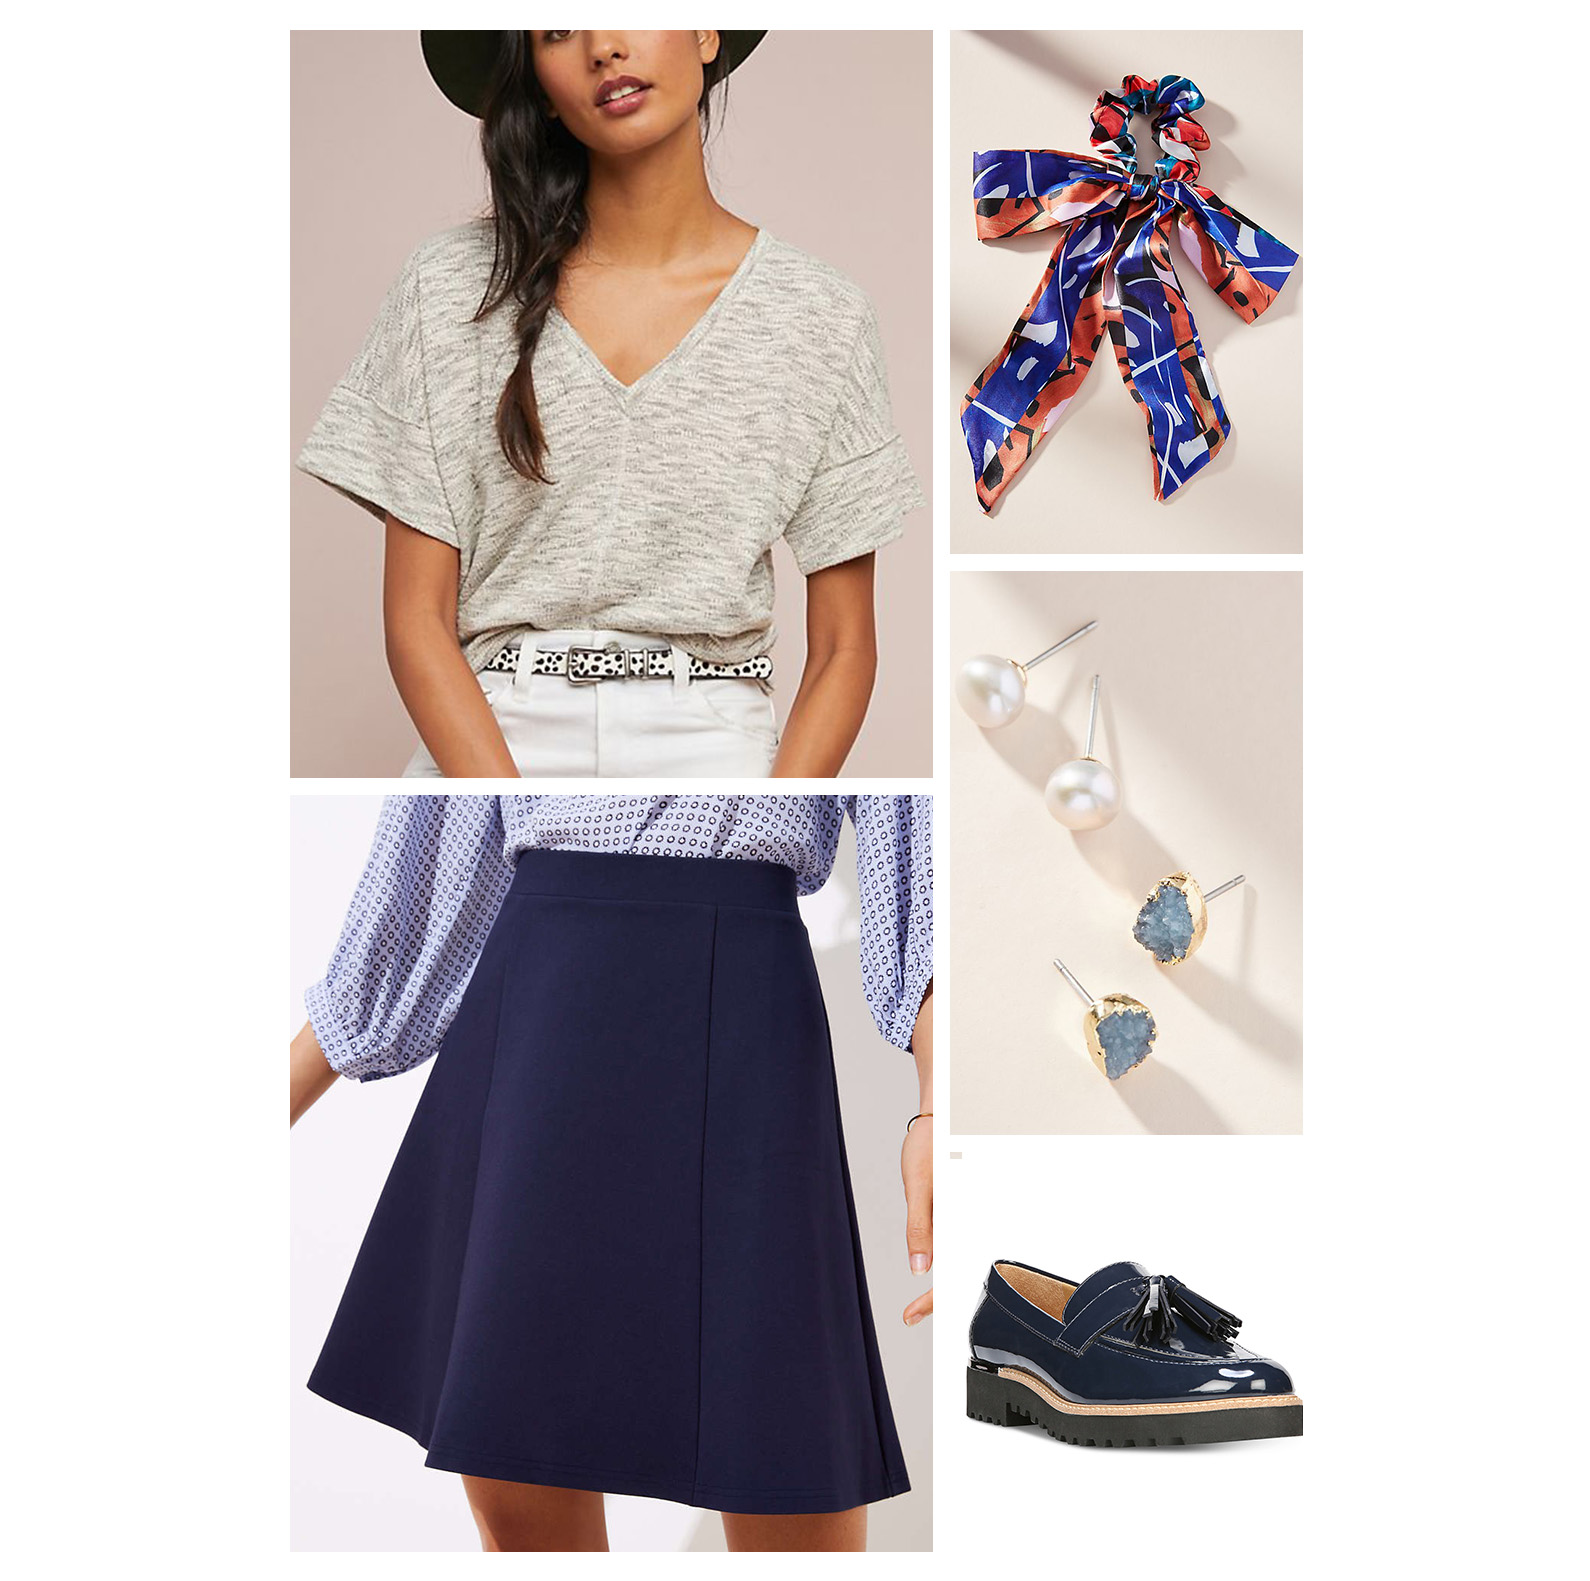 fall-autumn-outfit-work-2018-fashion-ideas-navy-blue-skirt-gray-tee-hair-accessory-ponytail-scarf-stud-earrings-loafers-office.jpg